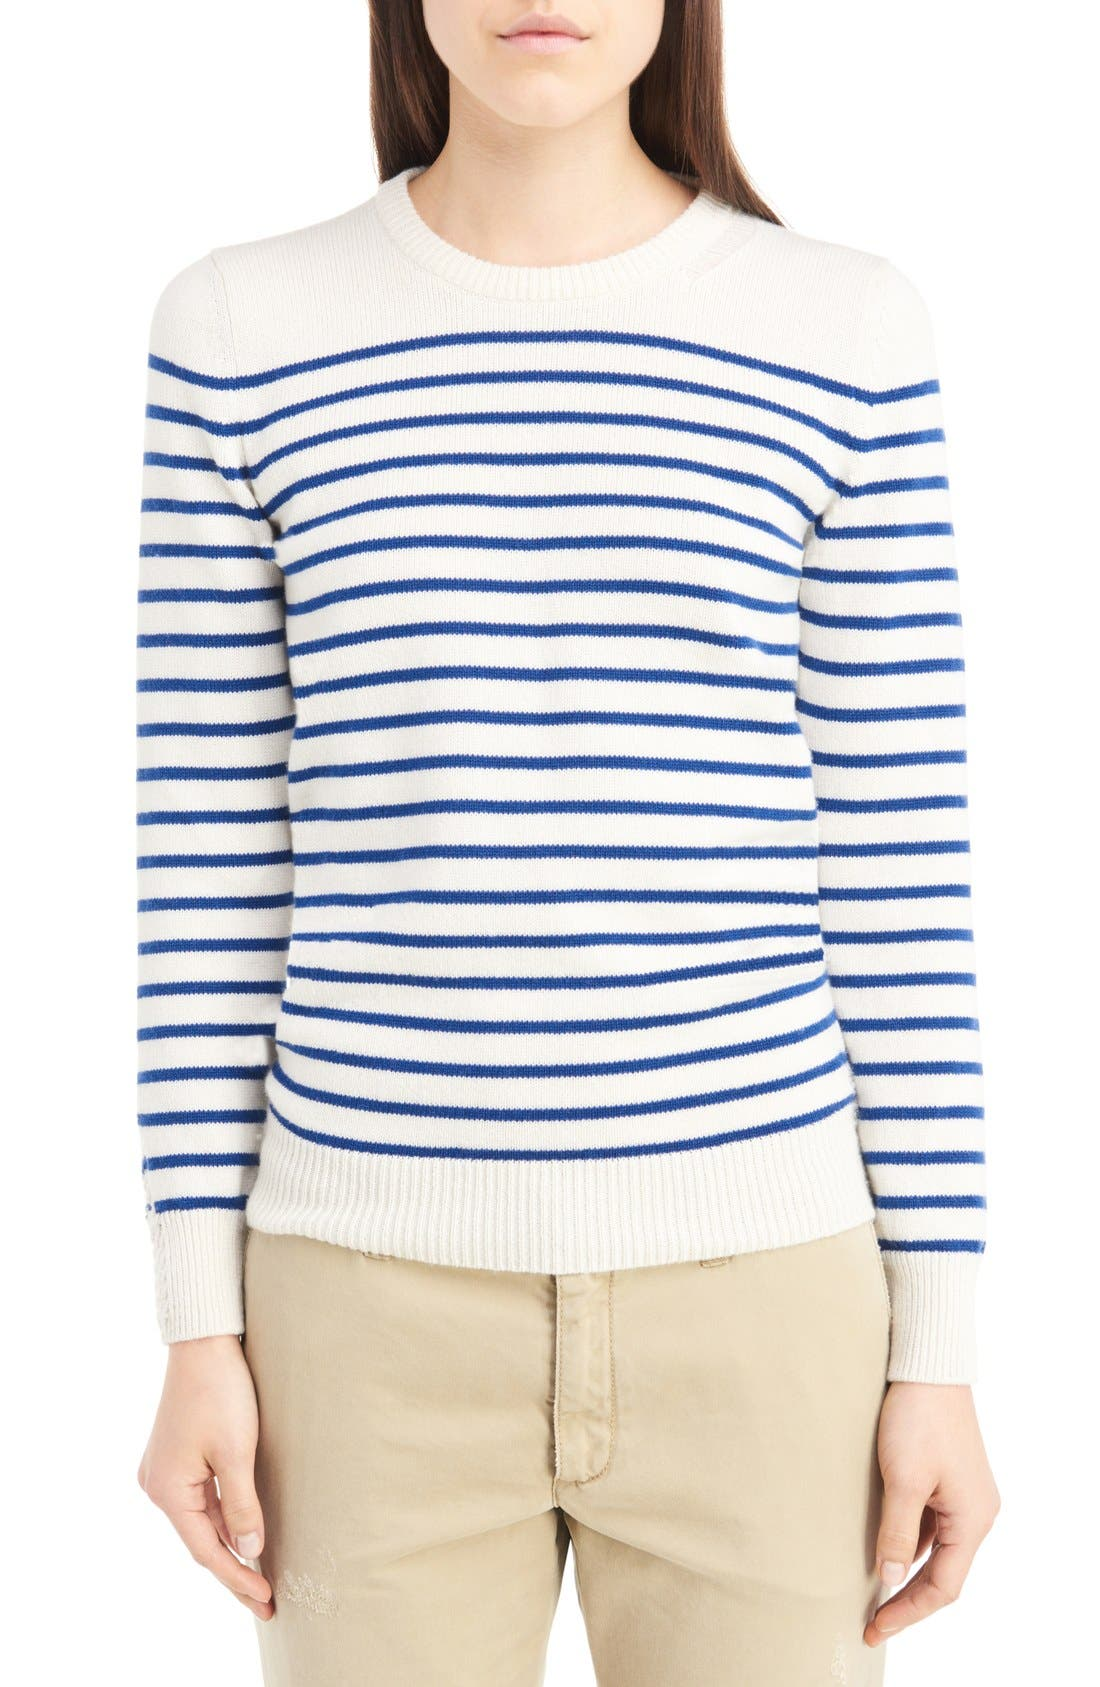 SAINT LAURENT Grunge Stripe Cashmere Sweater